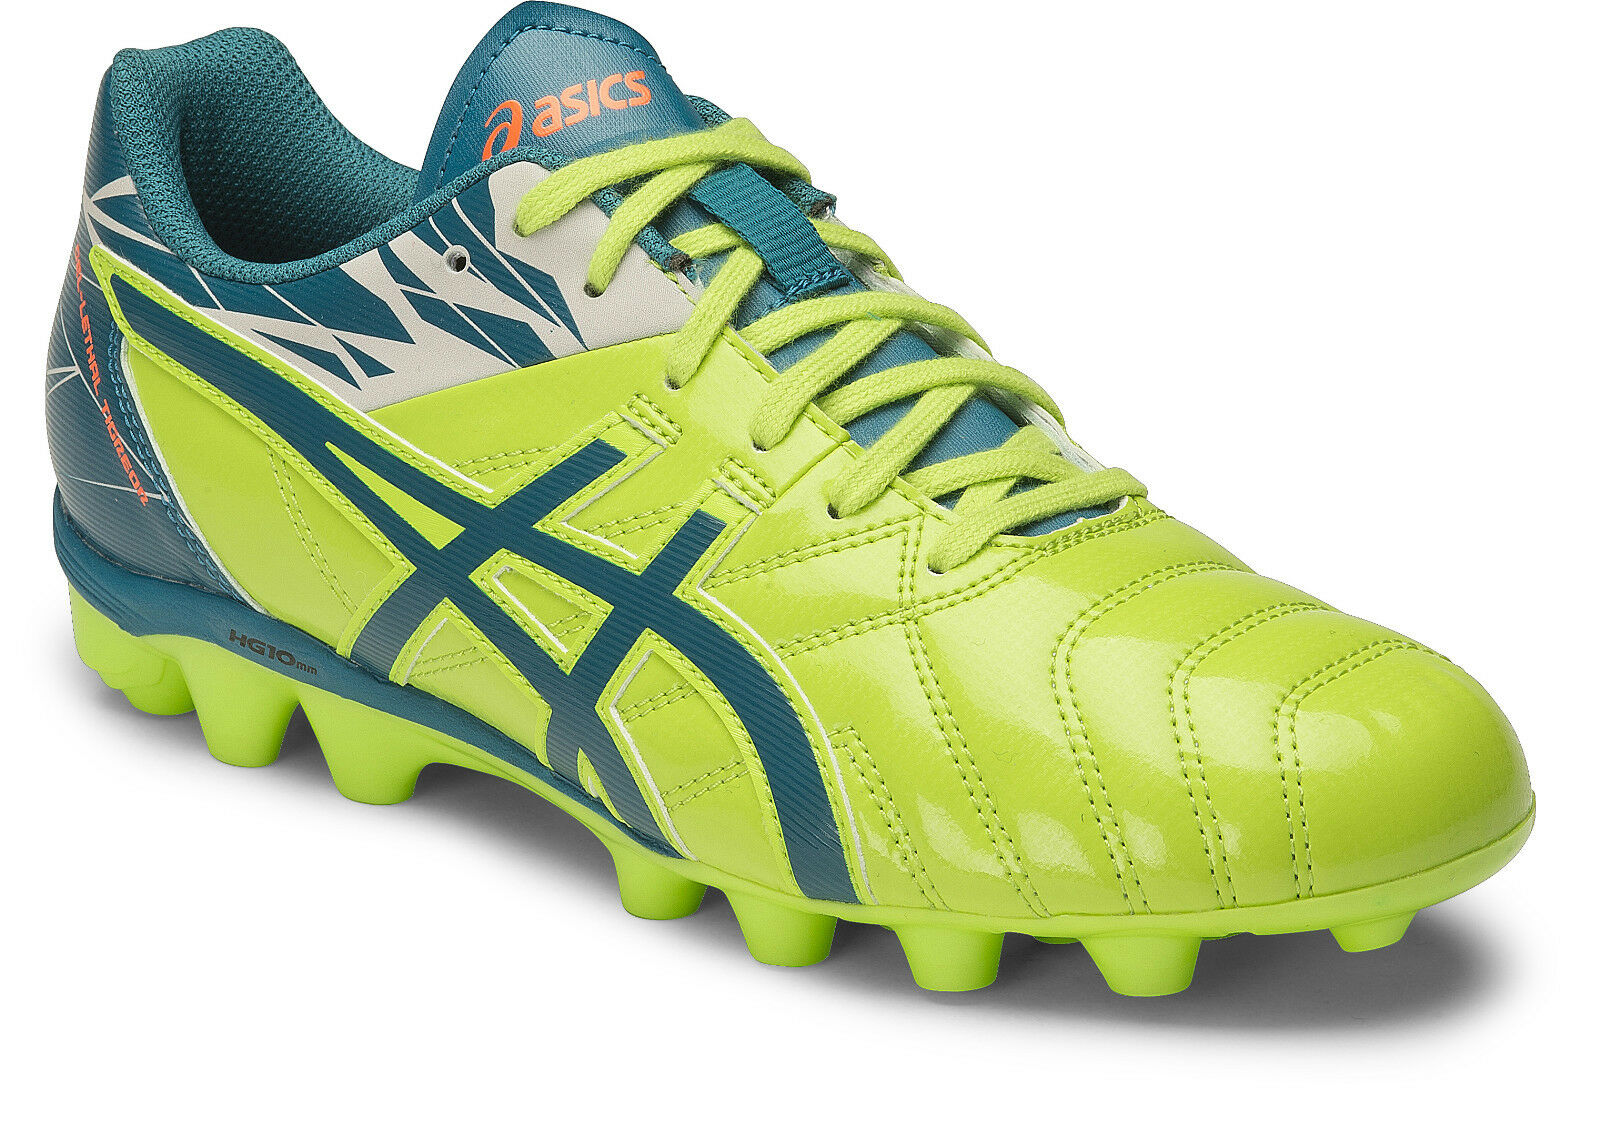 Asics Lethal Tigreor 9 IT GS Kids Football stivali 0561   Save